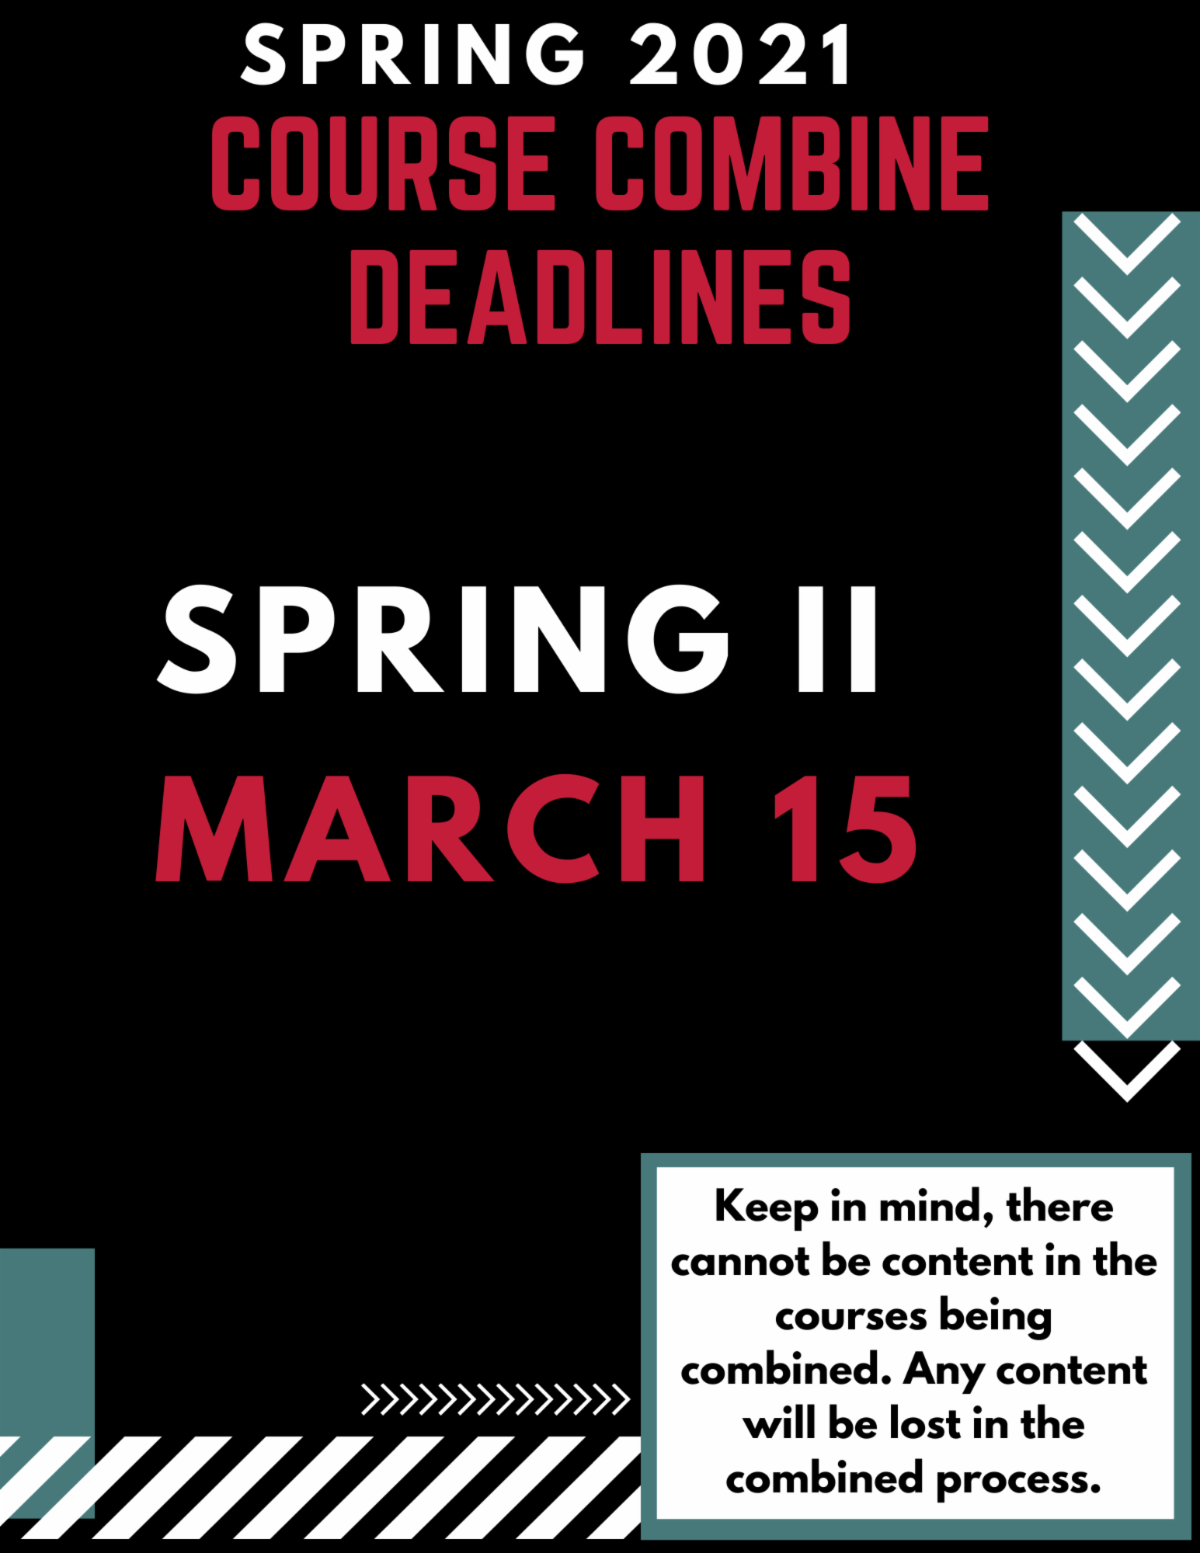 the course combine deadline for spring 2 2021 is march 15